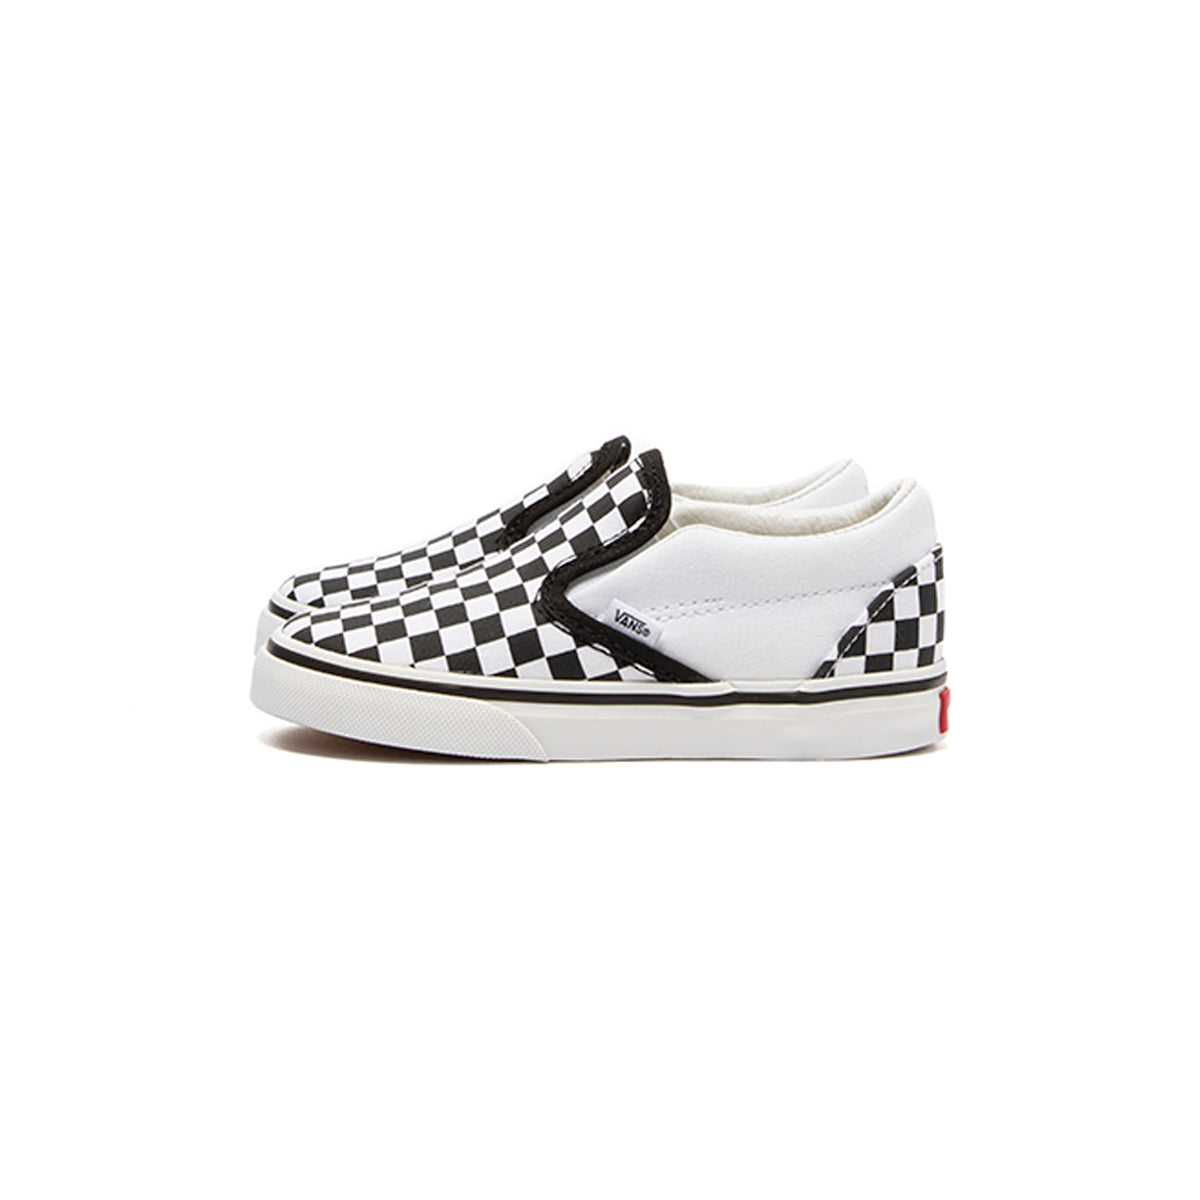 ConceptsIntl Vans Toddler Classic Slip On (Checkerboard Black)  Vans Toddler Classic Slip On (Checkerboard Black)